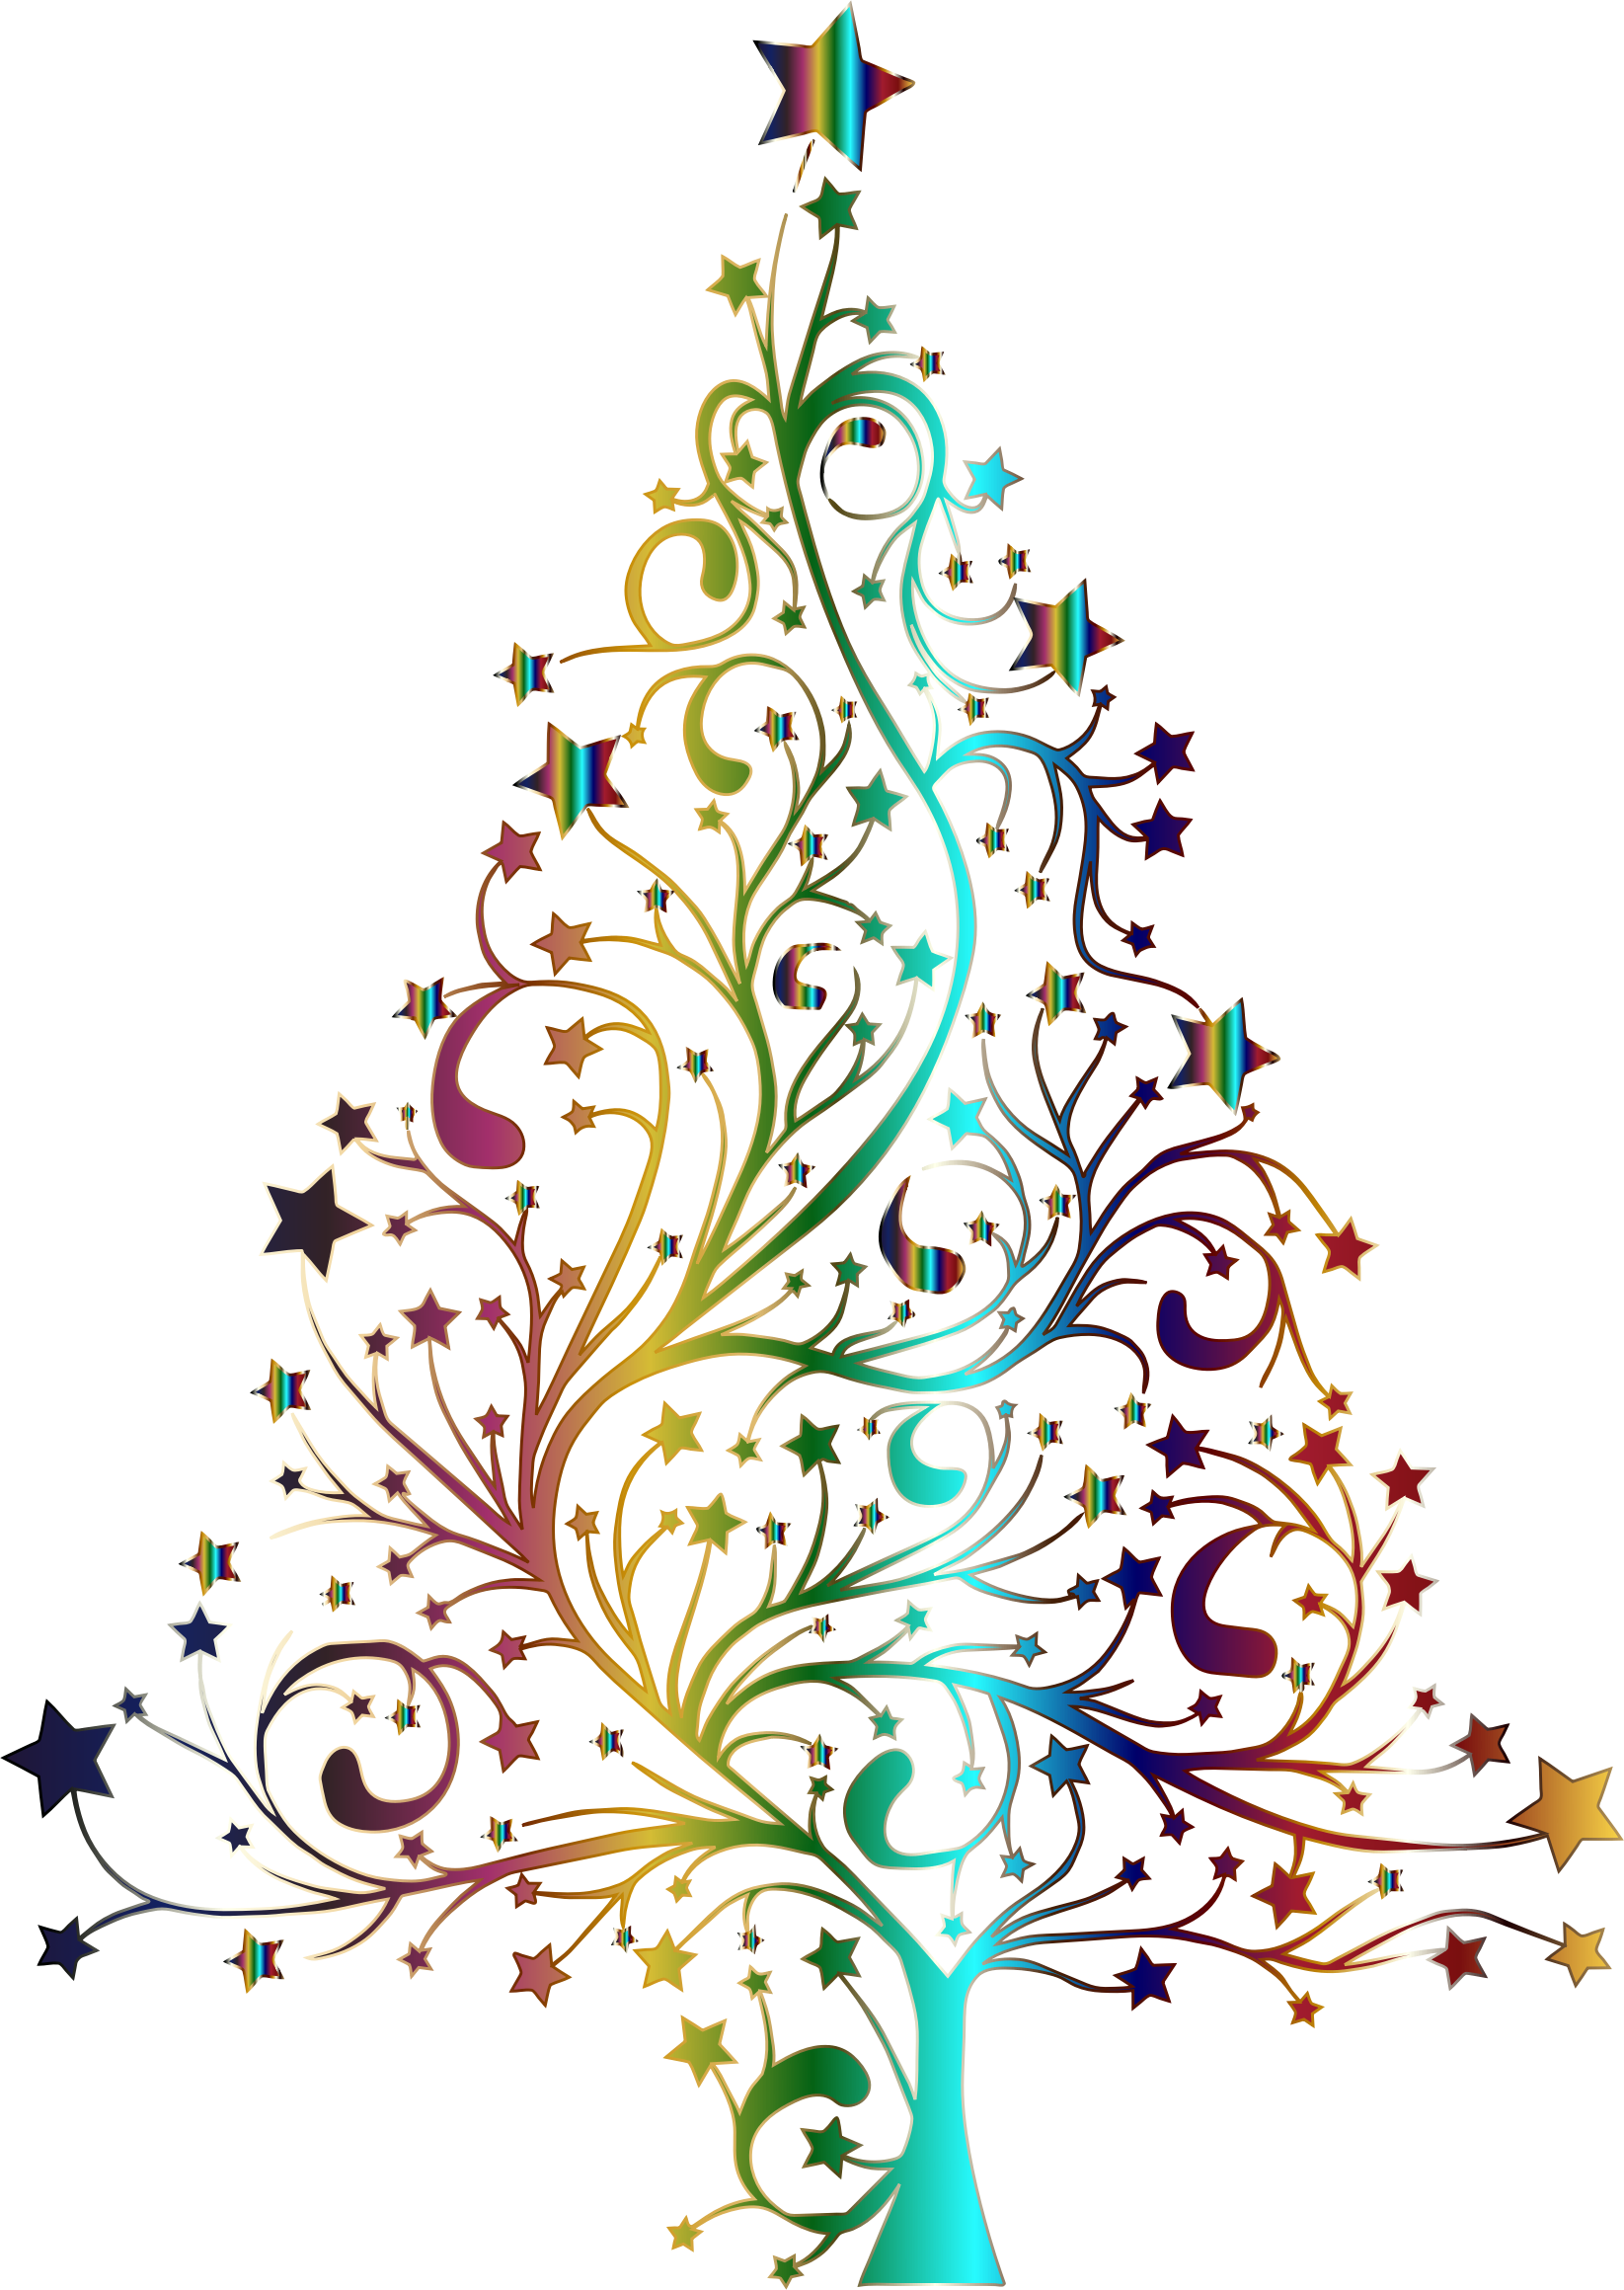 Starry Christmas Tree Prismatic No Background on Whimsical Tree Clip Art Free